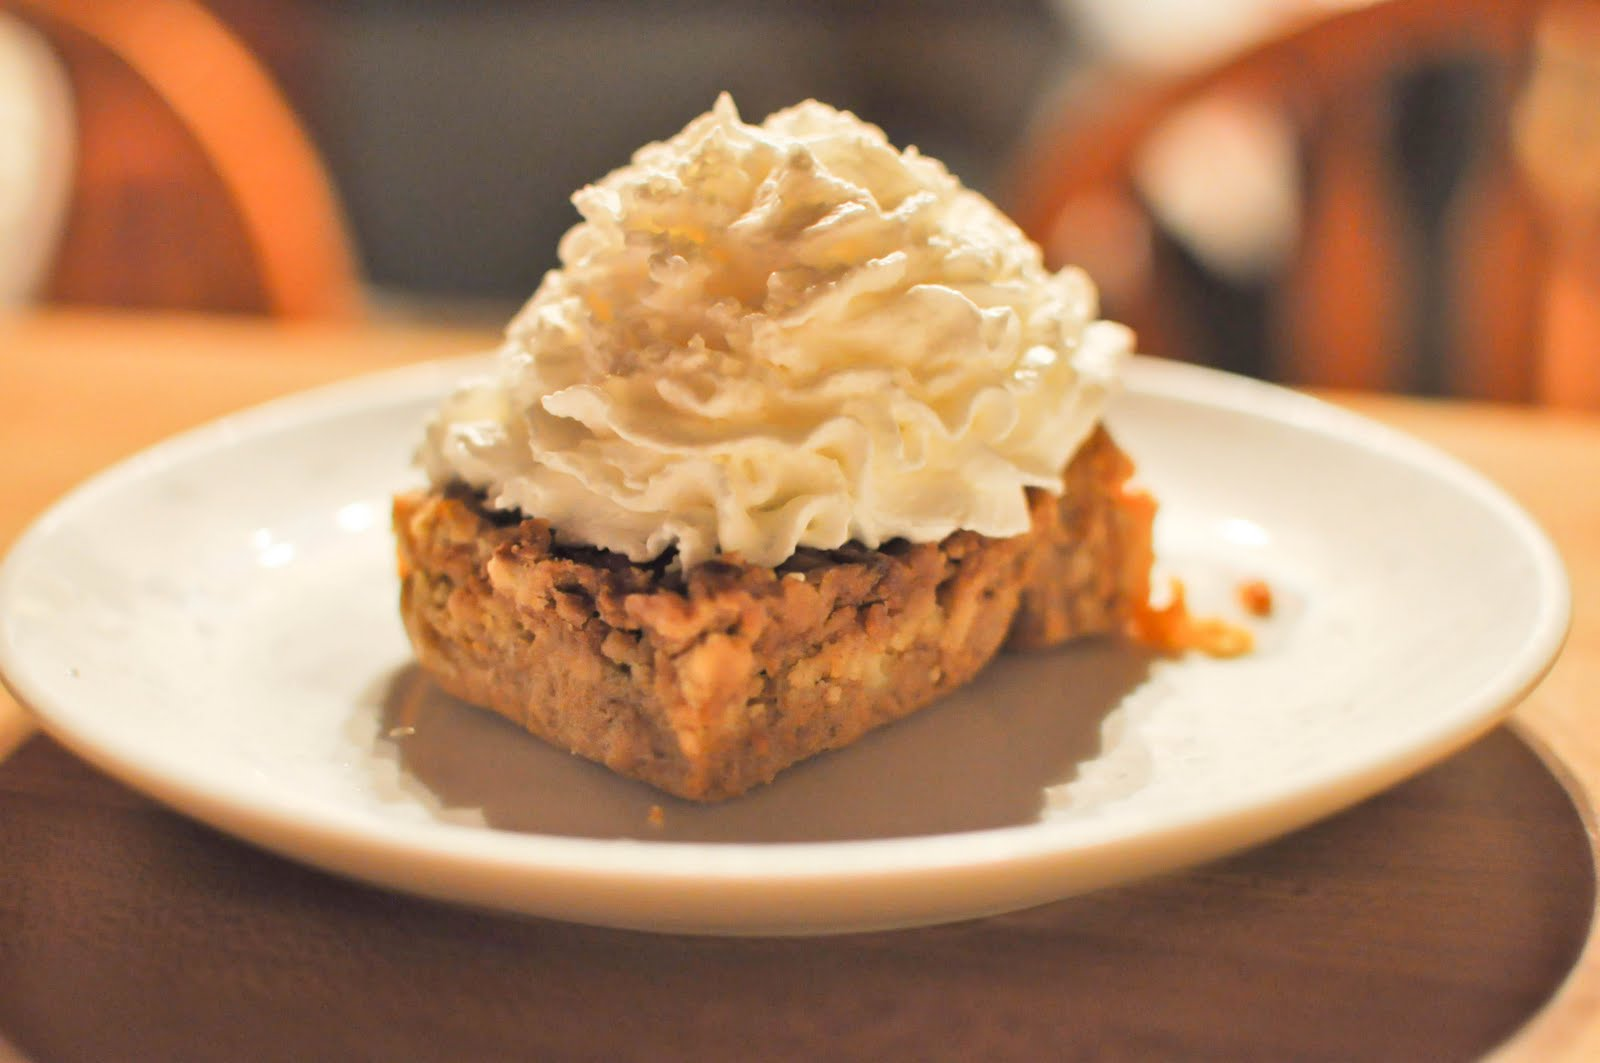 Bless This Food: The Great Pumpkin Dessert